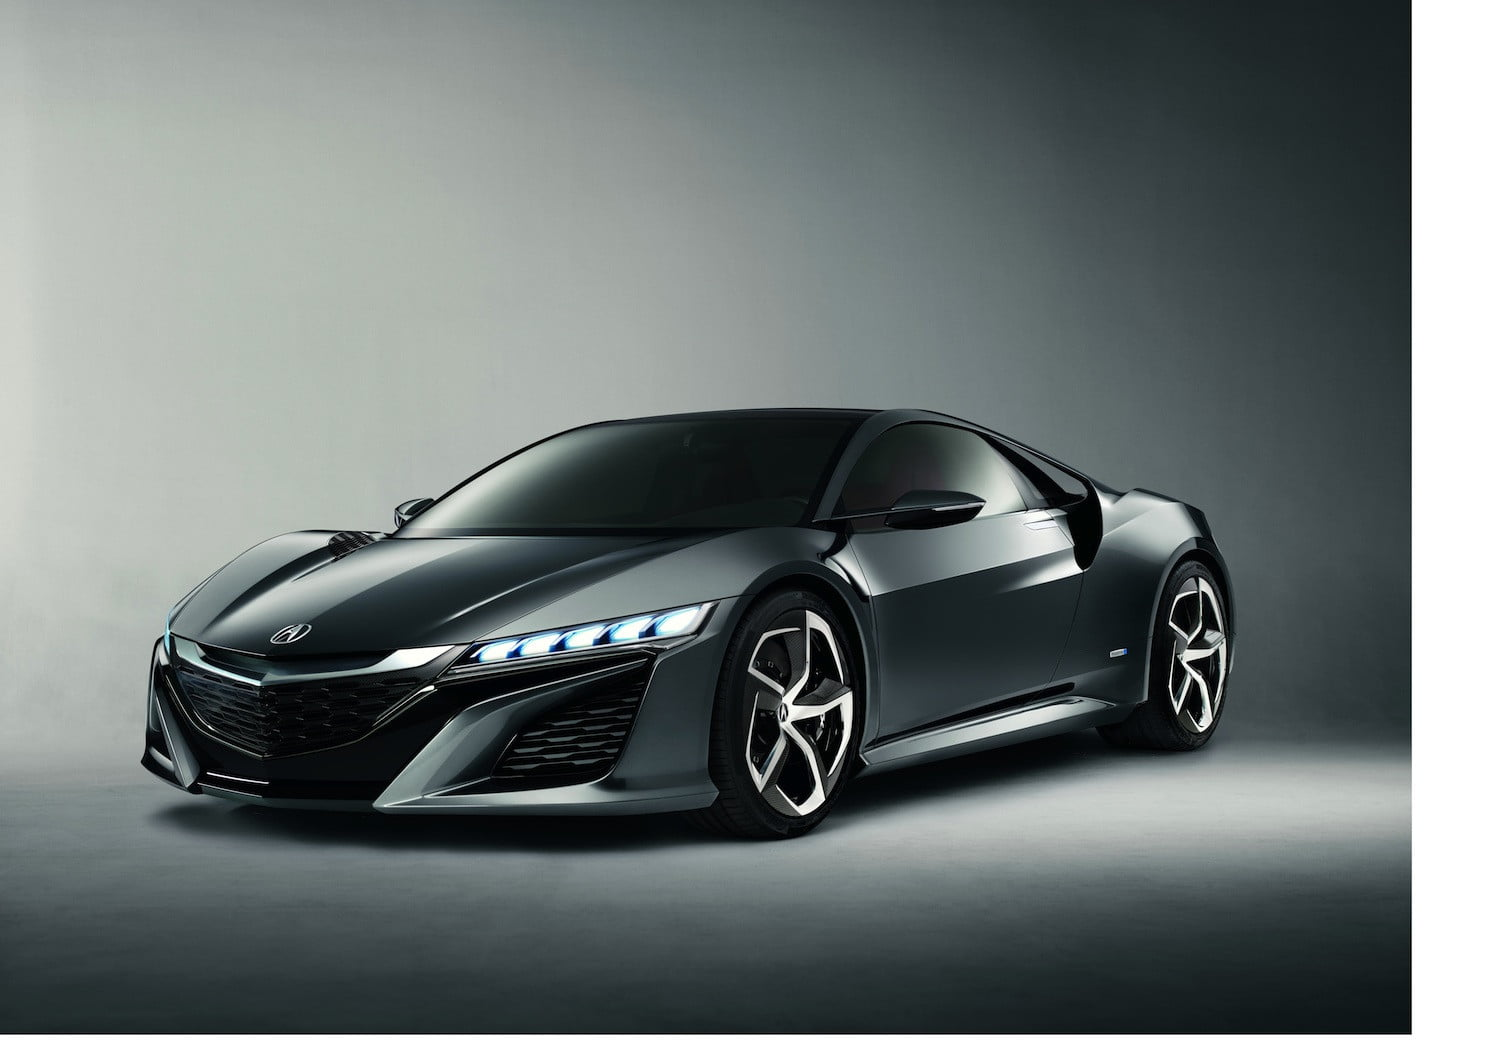 Brits allowed to place pre-orders for the up-coming U.S.-built Acura NSX